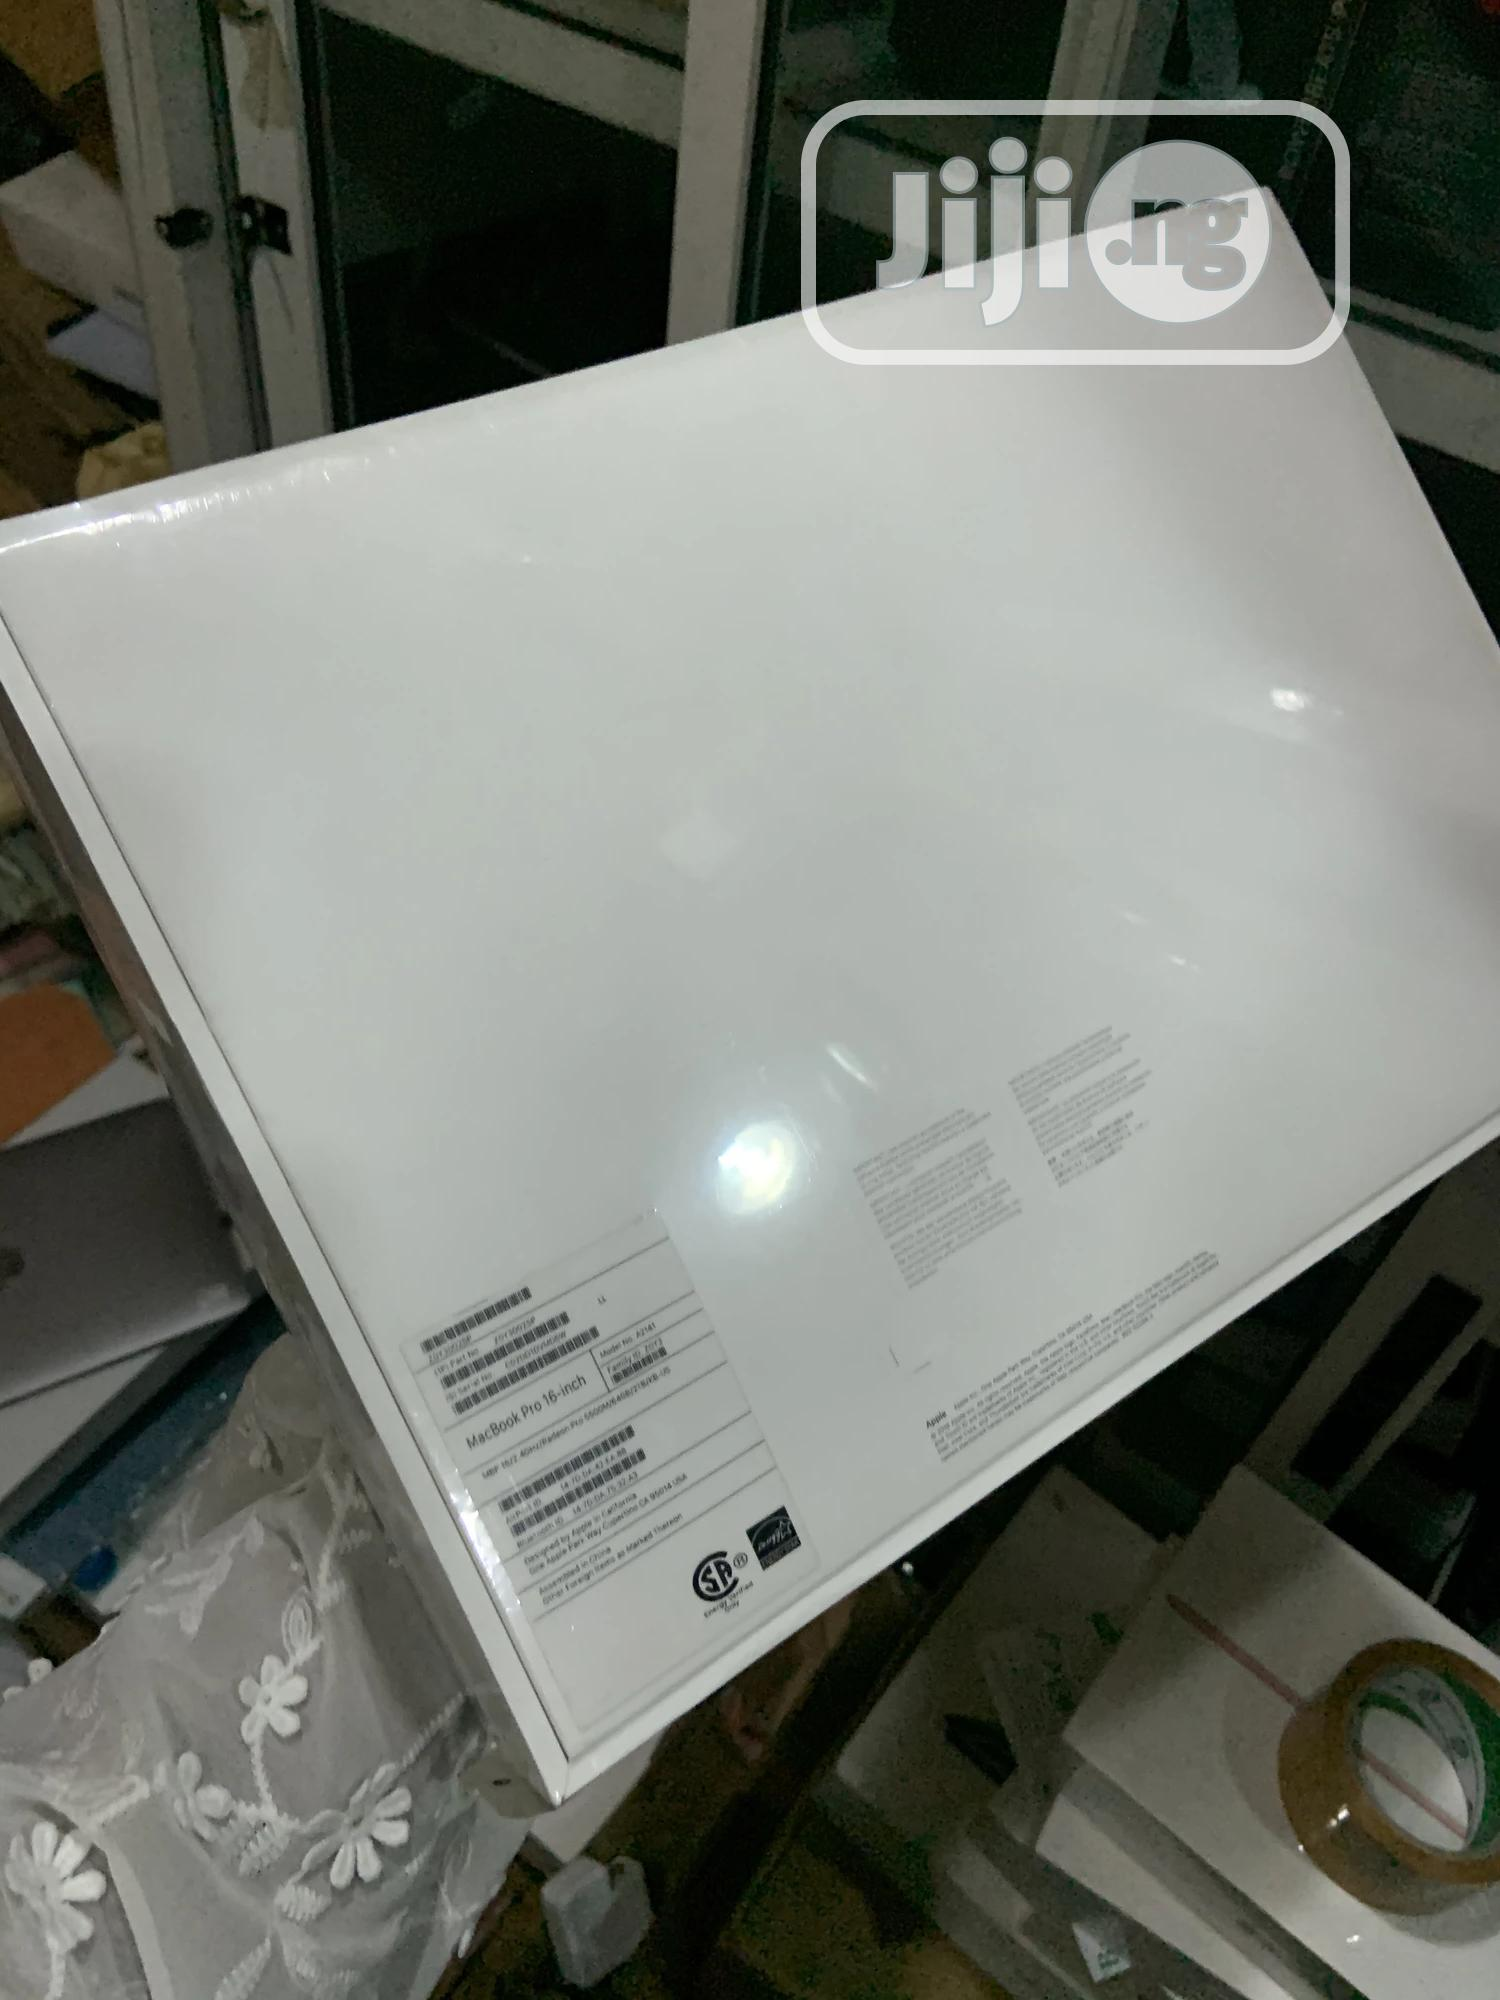 New Laptop Apple MacBook Pro 2020 32GB Intel Core I9 SSD 2T | Laptops & Computers for sale in Ikeja, Lagos State, Nigeria